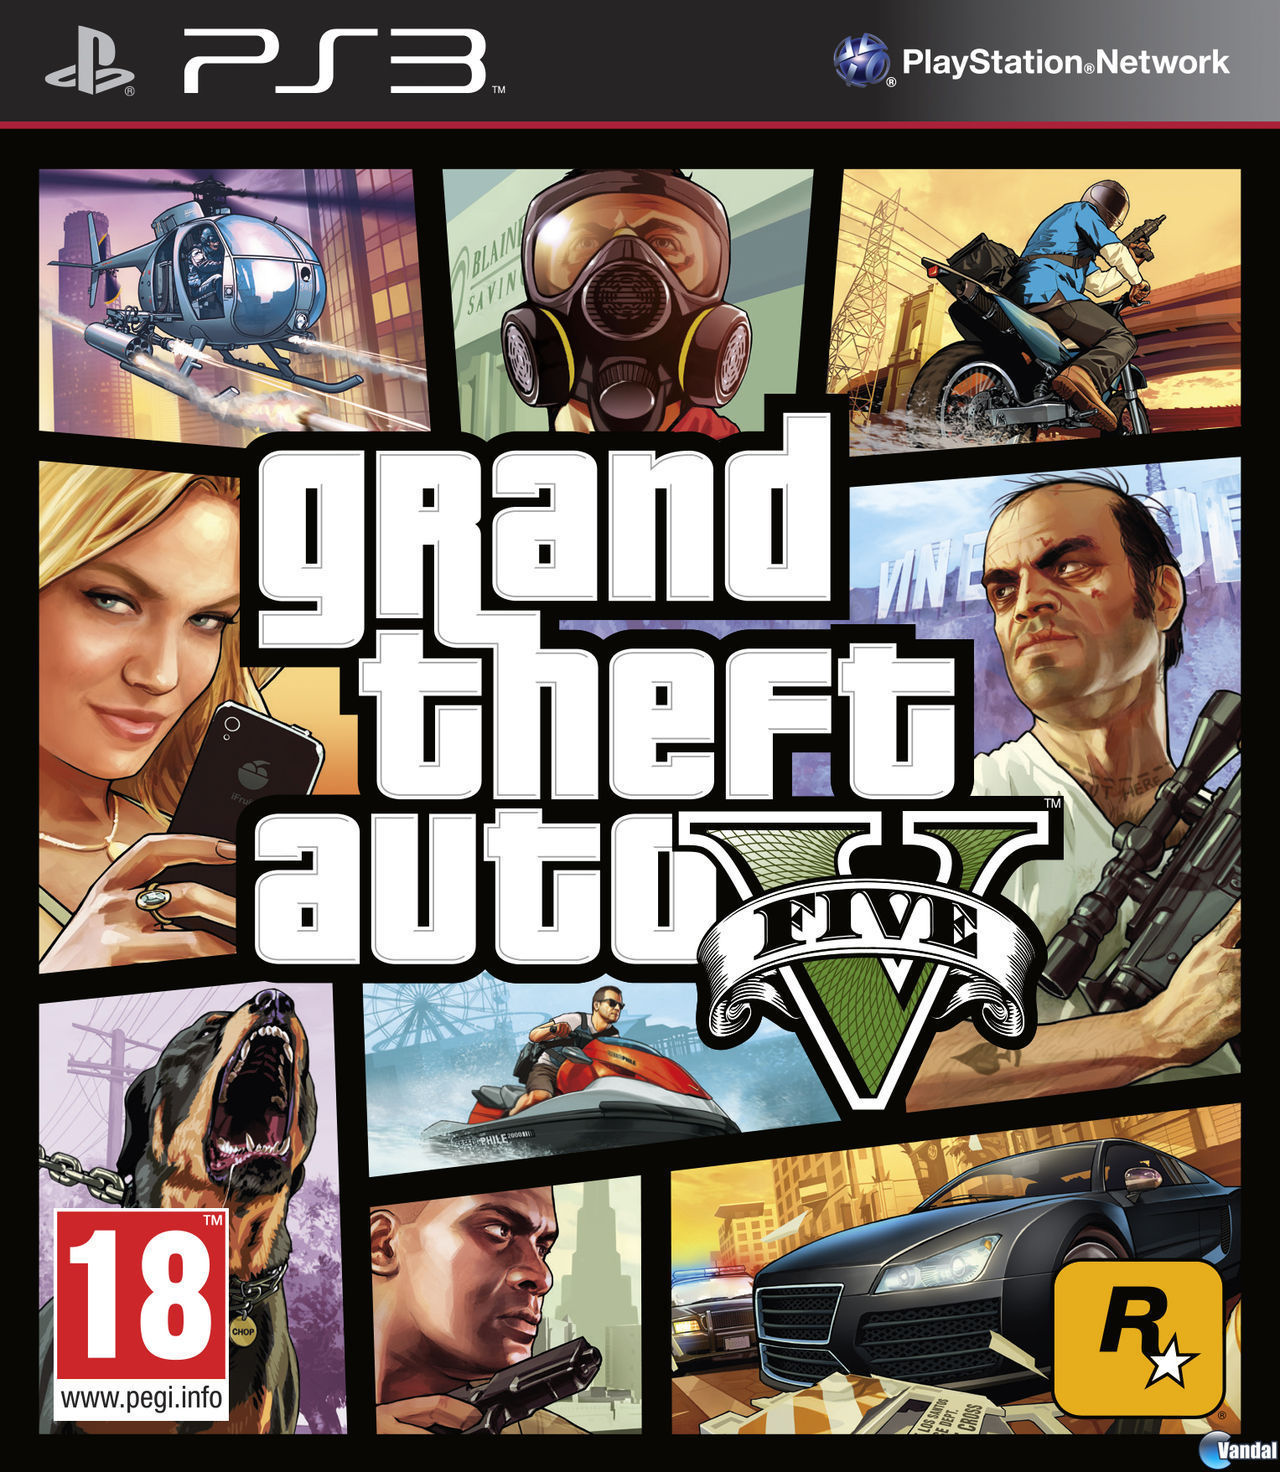 Libro Guia Gta V Trucos Grand Theft Auto V Ps3 Claves Guías